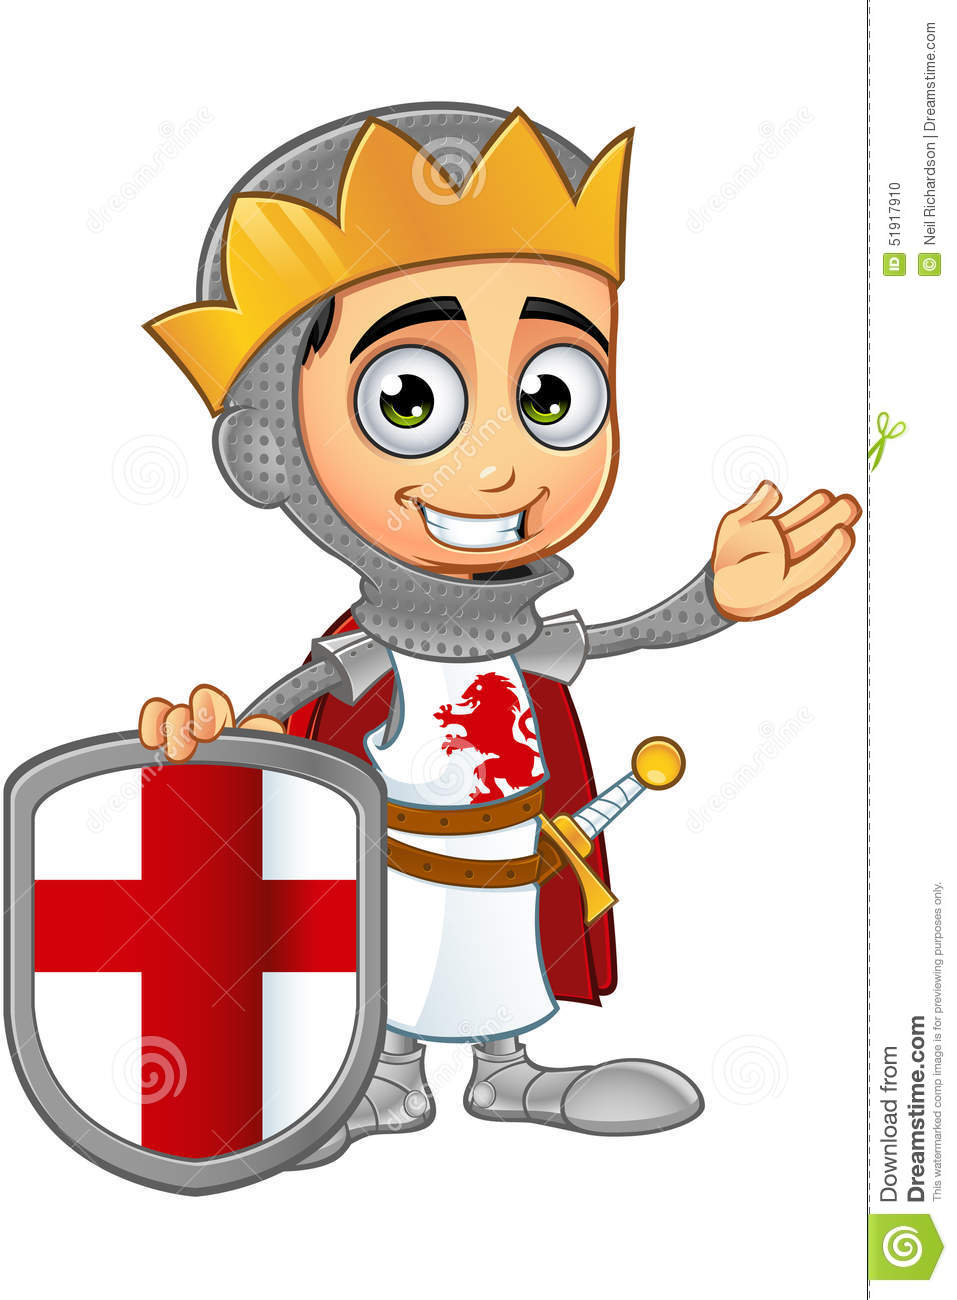 St. George Boy King Character Stock Vector - Image: 51917910